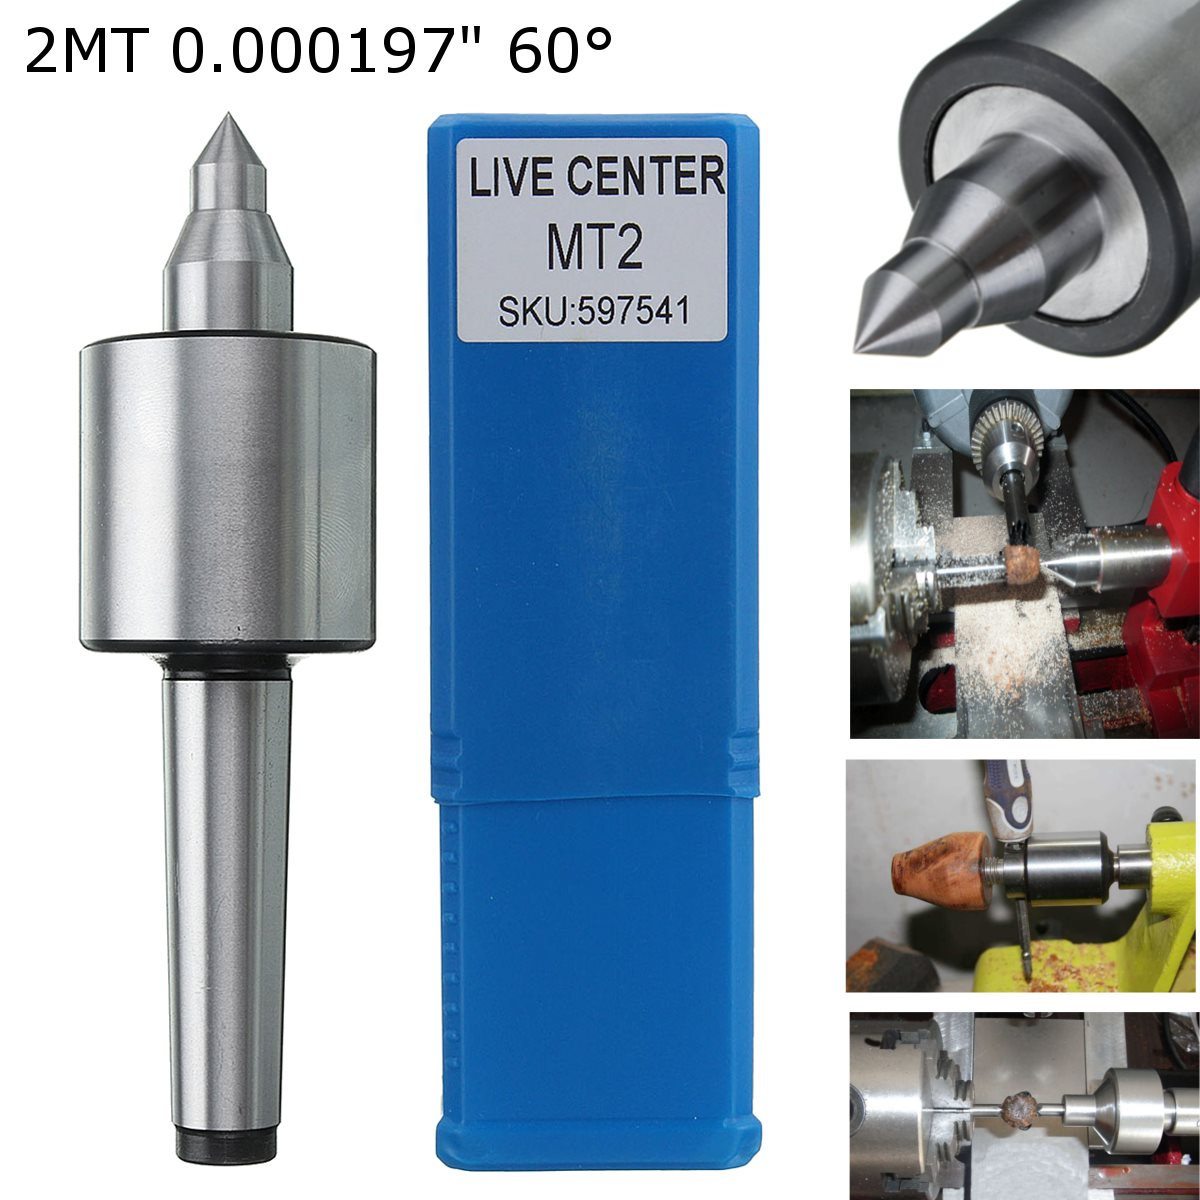 MT2 Spindle Lathe Live Center Morse Taper CNC Tool 0.000197 Inch Precision mt2 precision live center morse taper triple bearing steel morse taper for lathe revolving tool